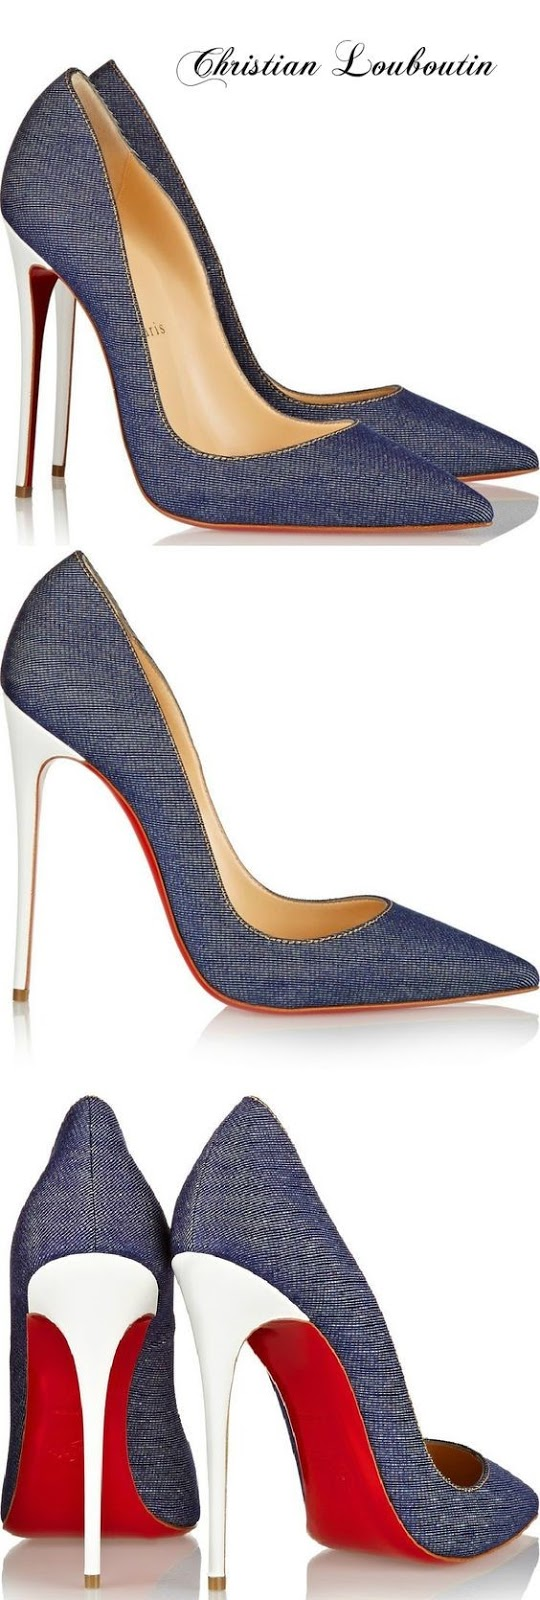 Sapatos de ganga Christian Louboutin - Denim Shoes